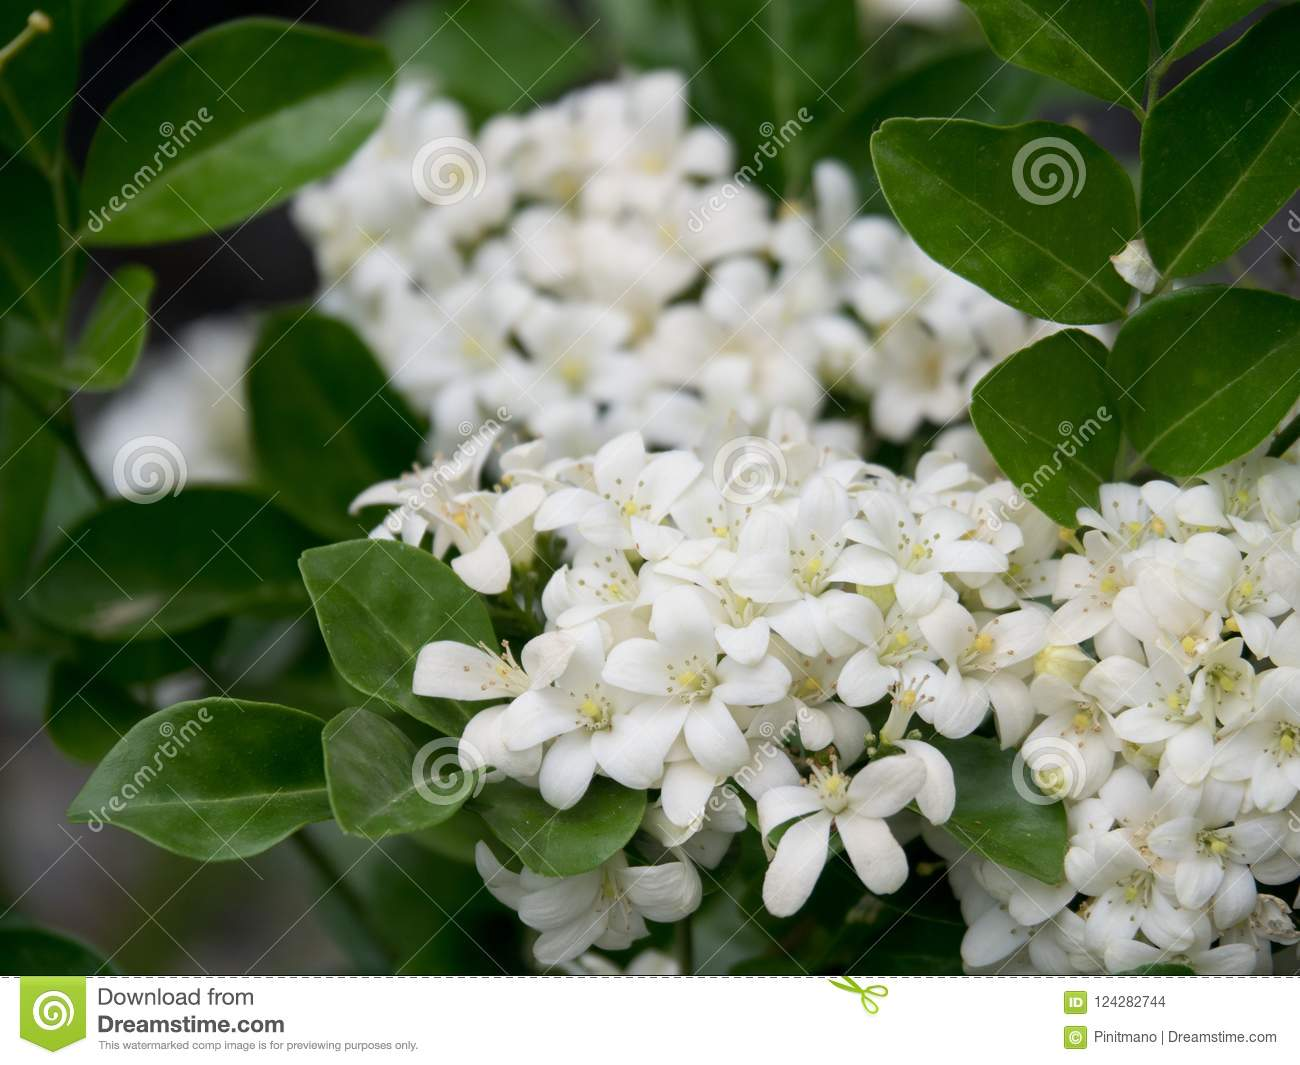 Pure white orange jasmine flowers small delicate and sweet scented download pure white orange jasmine flowers small delicate and sweet scented blooming at mightylinksfo